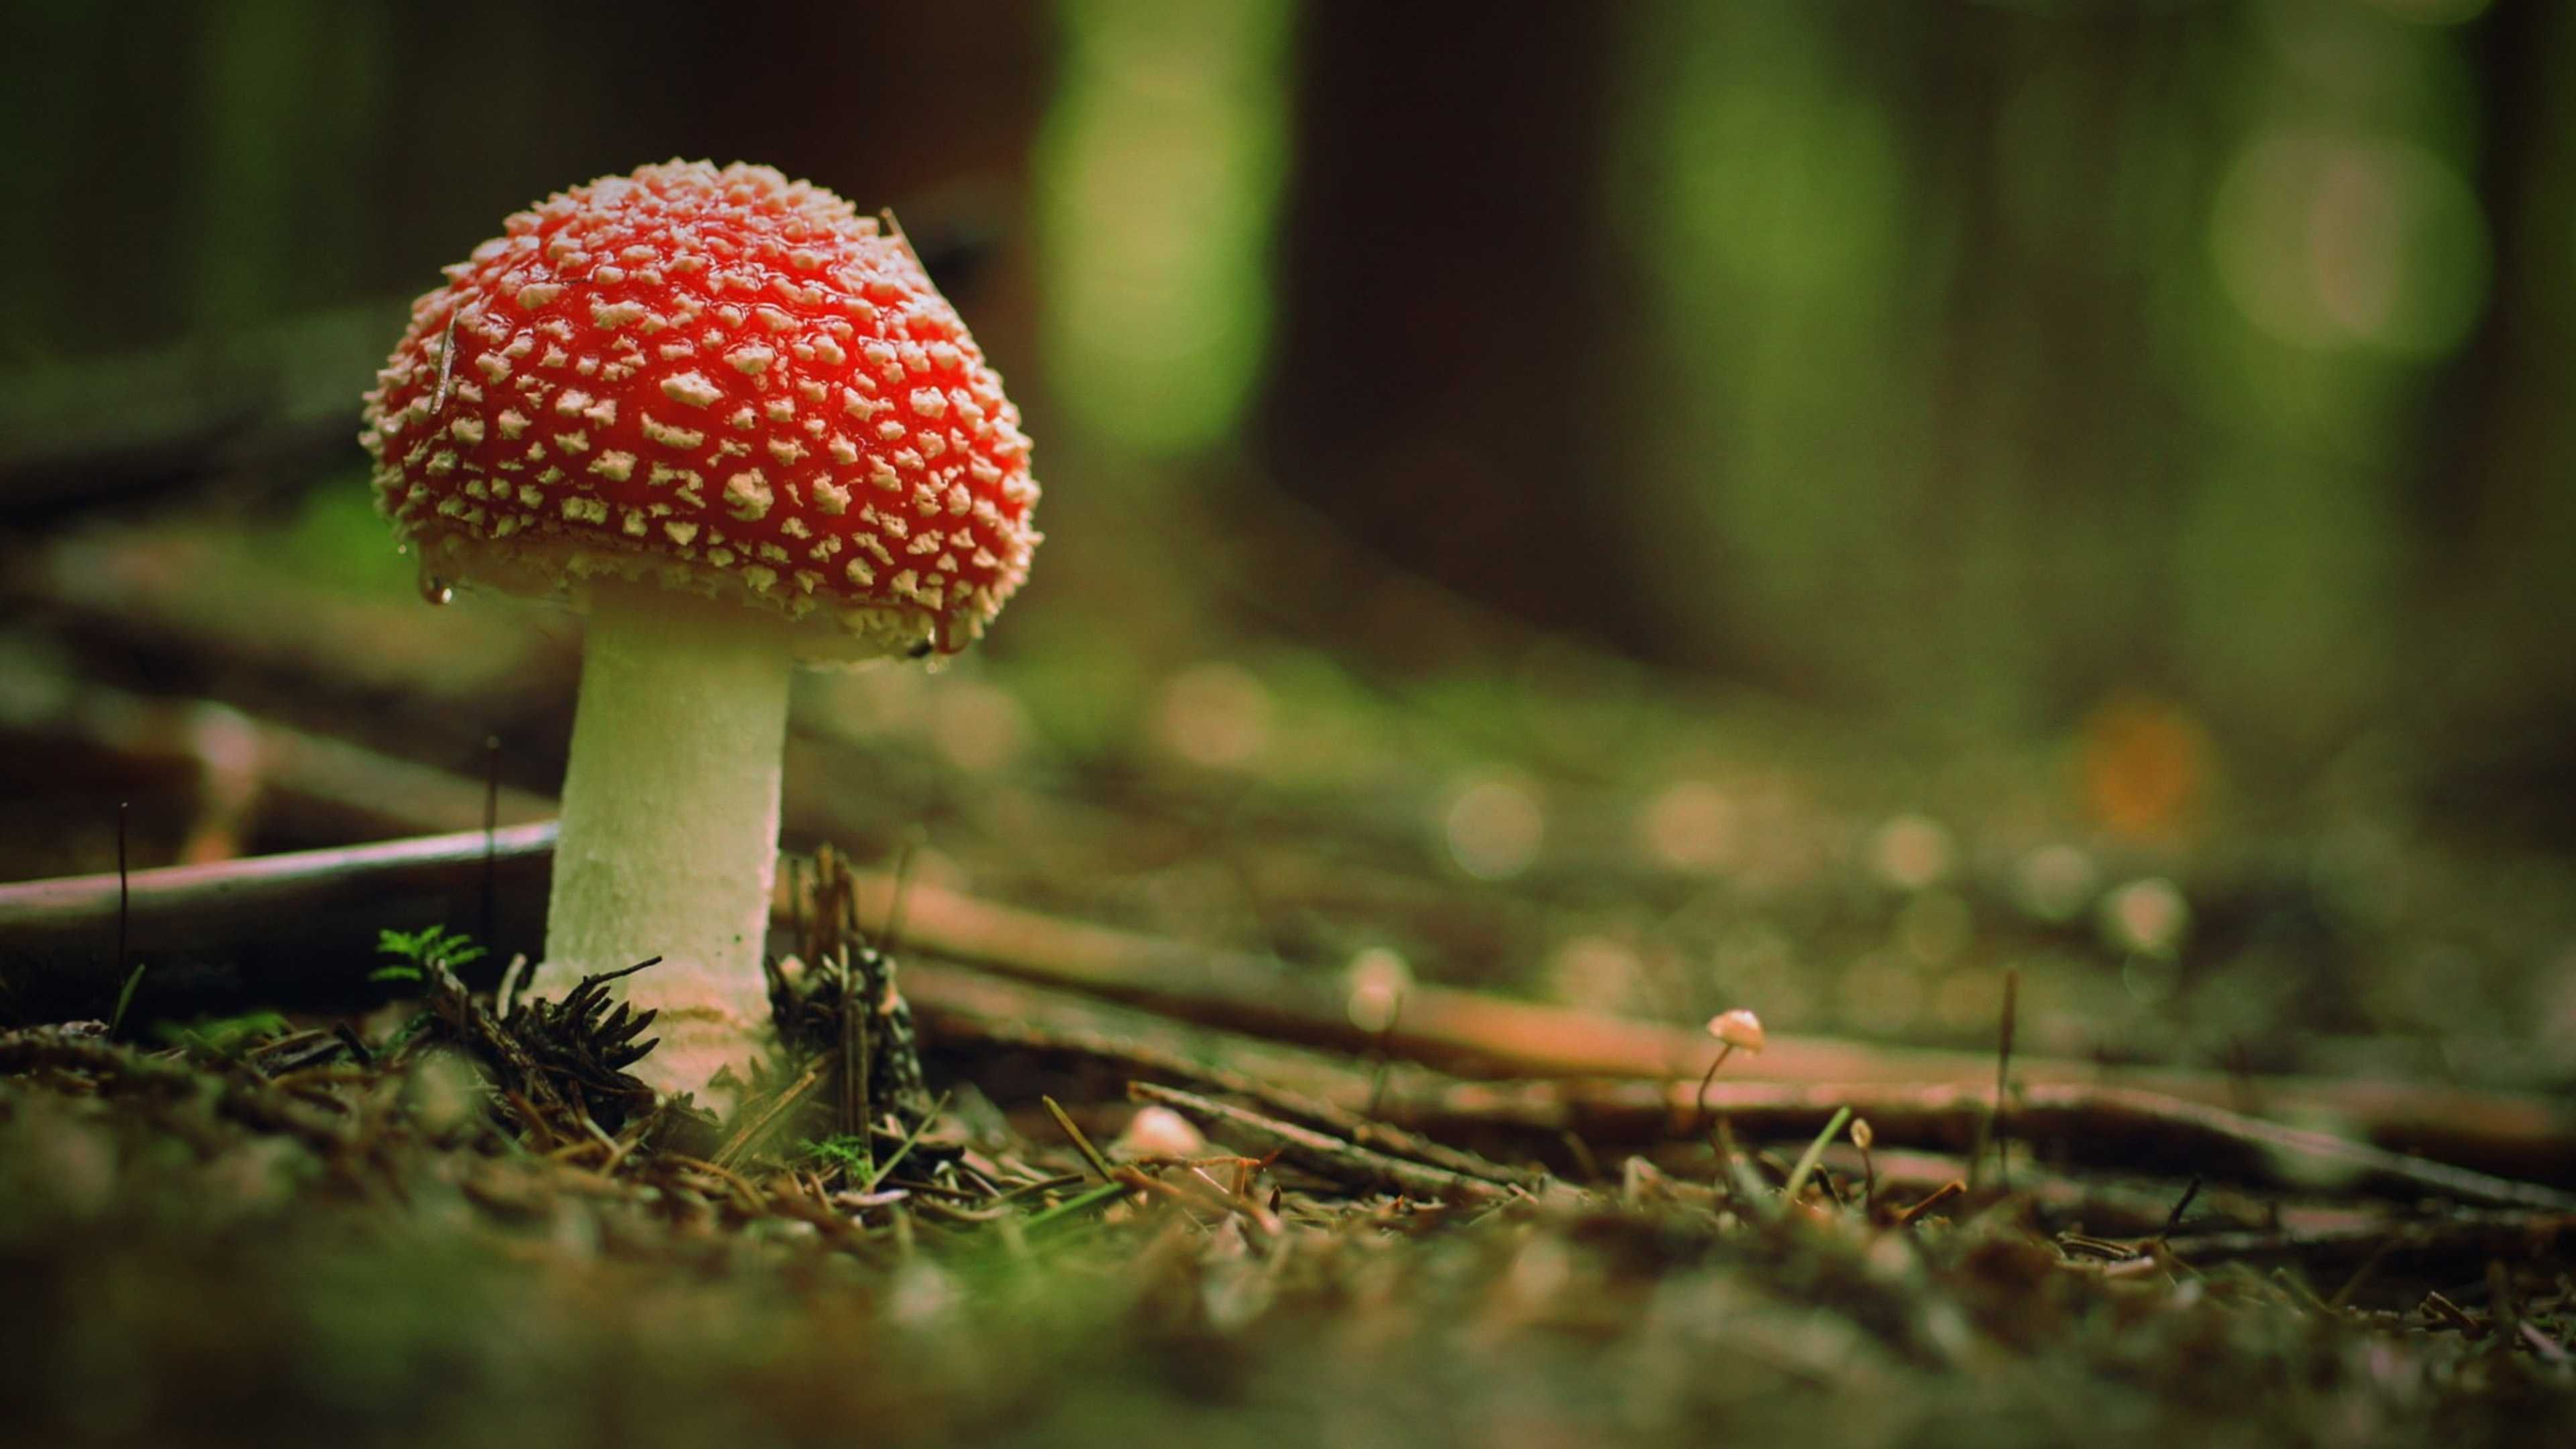 Wallpaper Download 3840x2160 Beautiful Poison Mushroom In